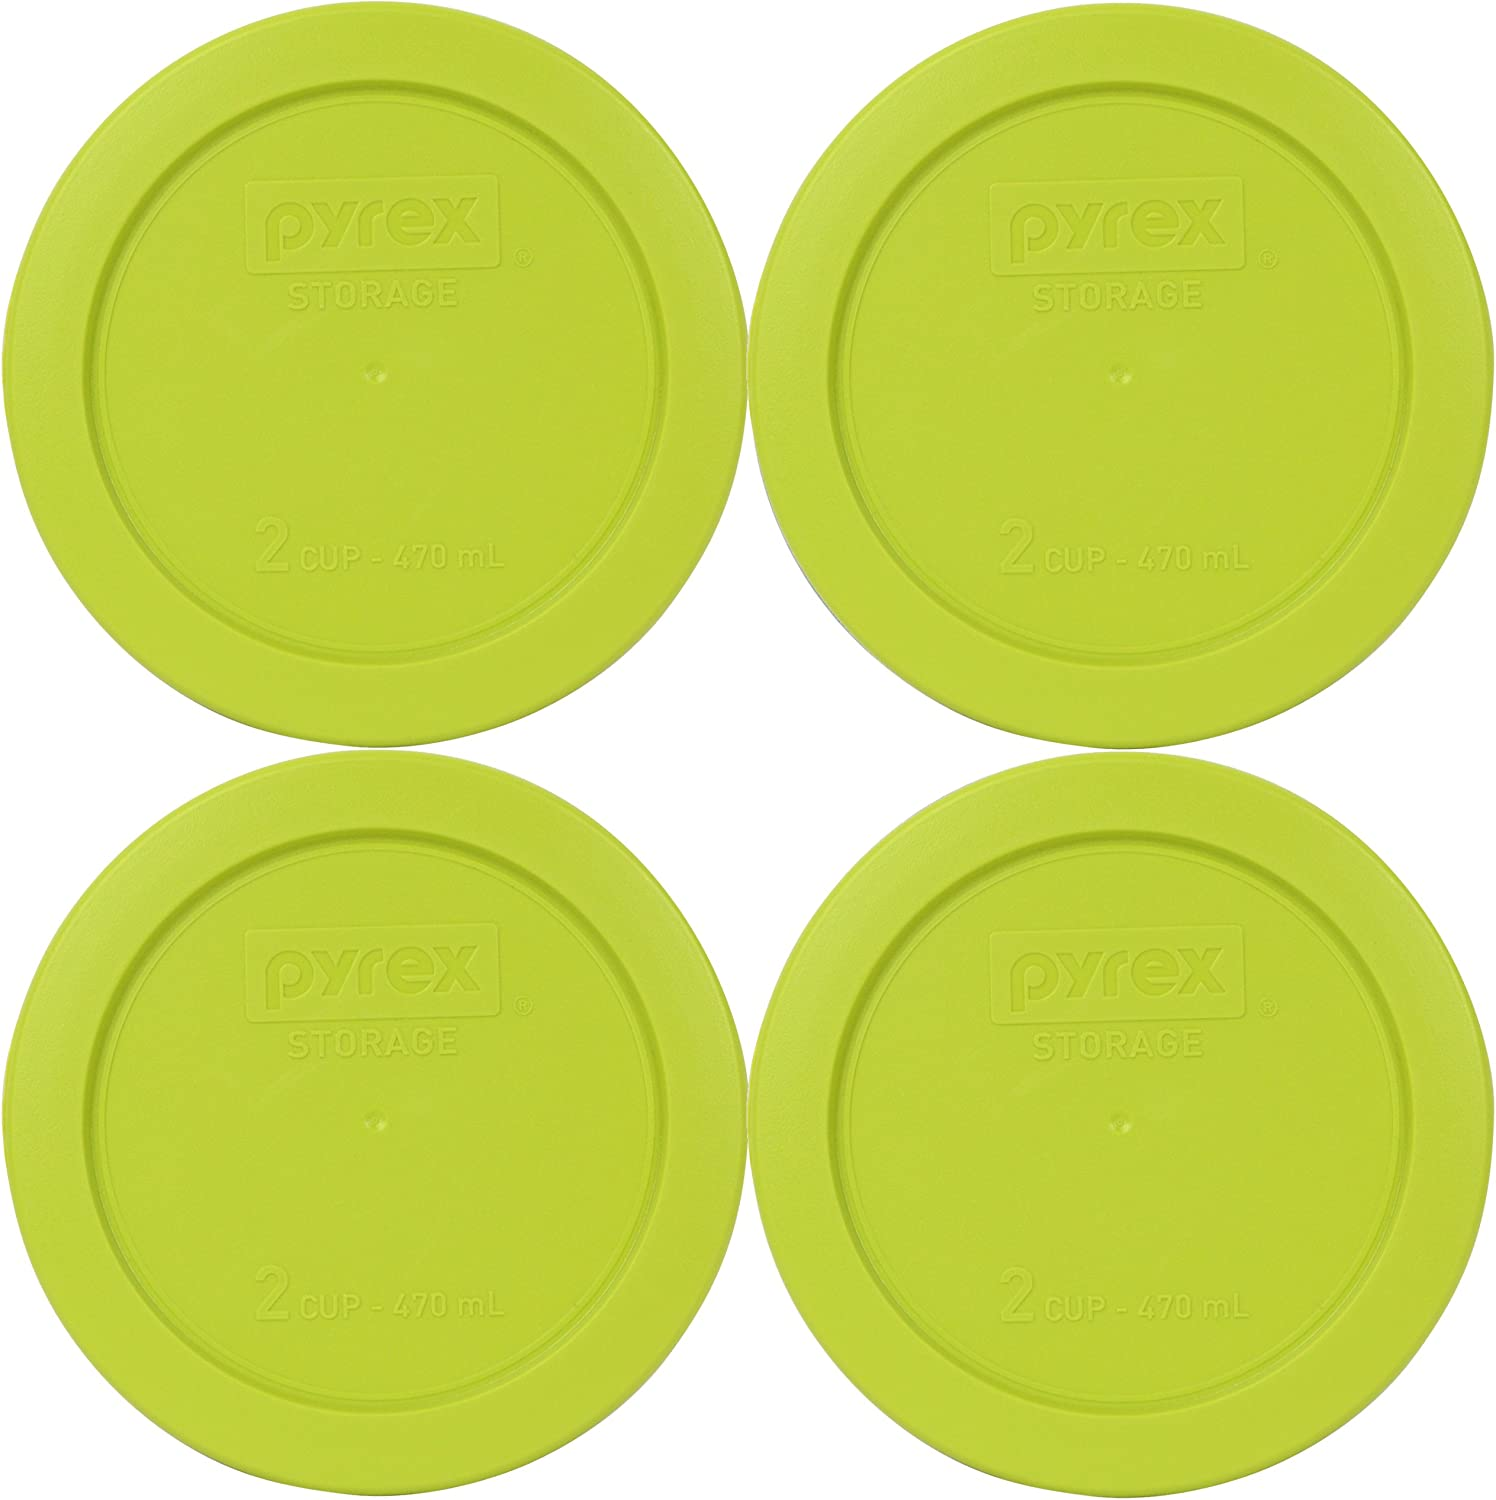 Pyrex Edamame 2 Cup Round Storage Cover #7200-PC for Glass Bowls 4-Pack